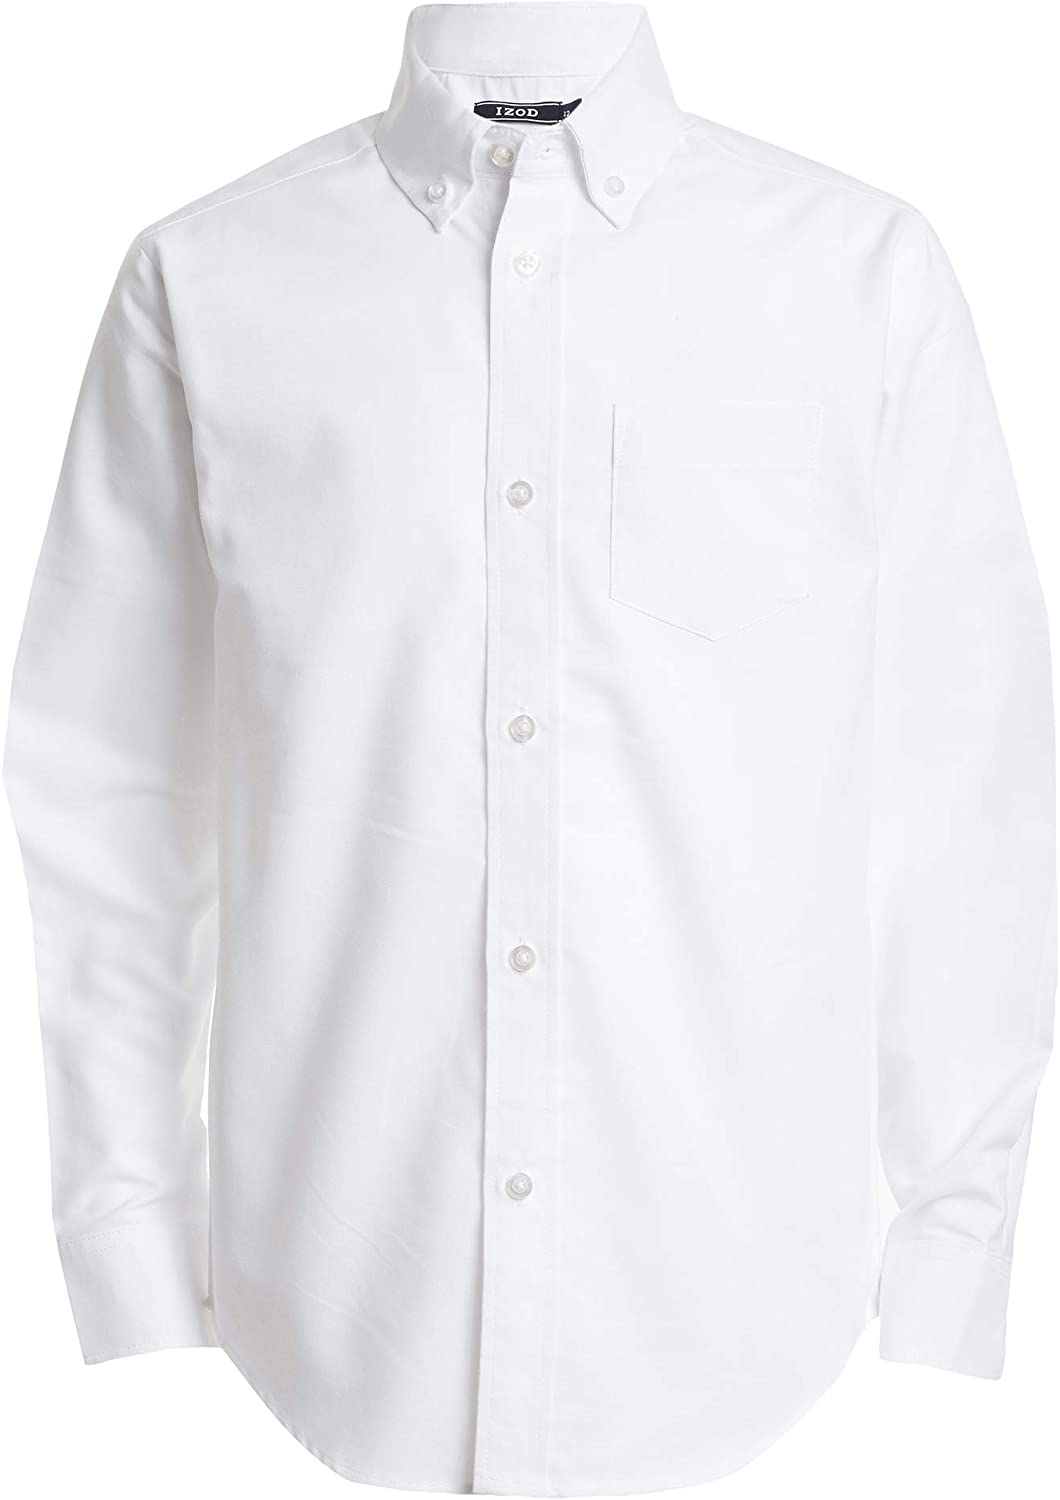 IZOD Boys' Long Sleeve Solid Button-Down Oxford Shirt